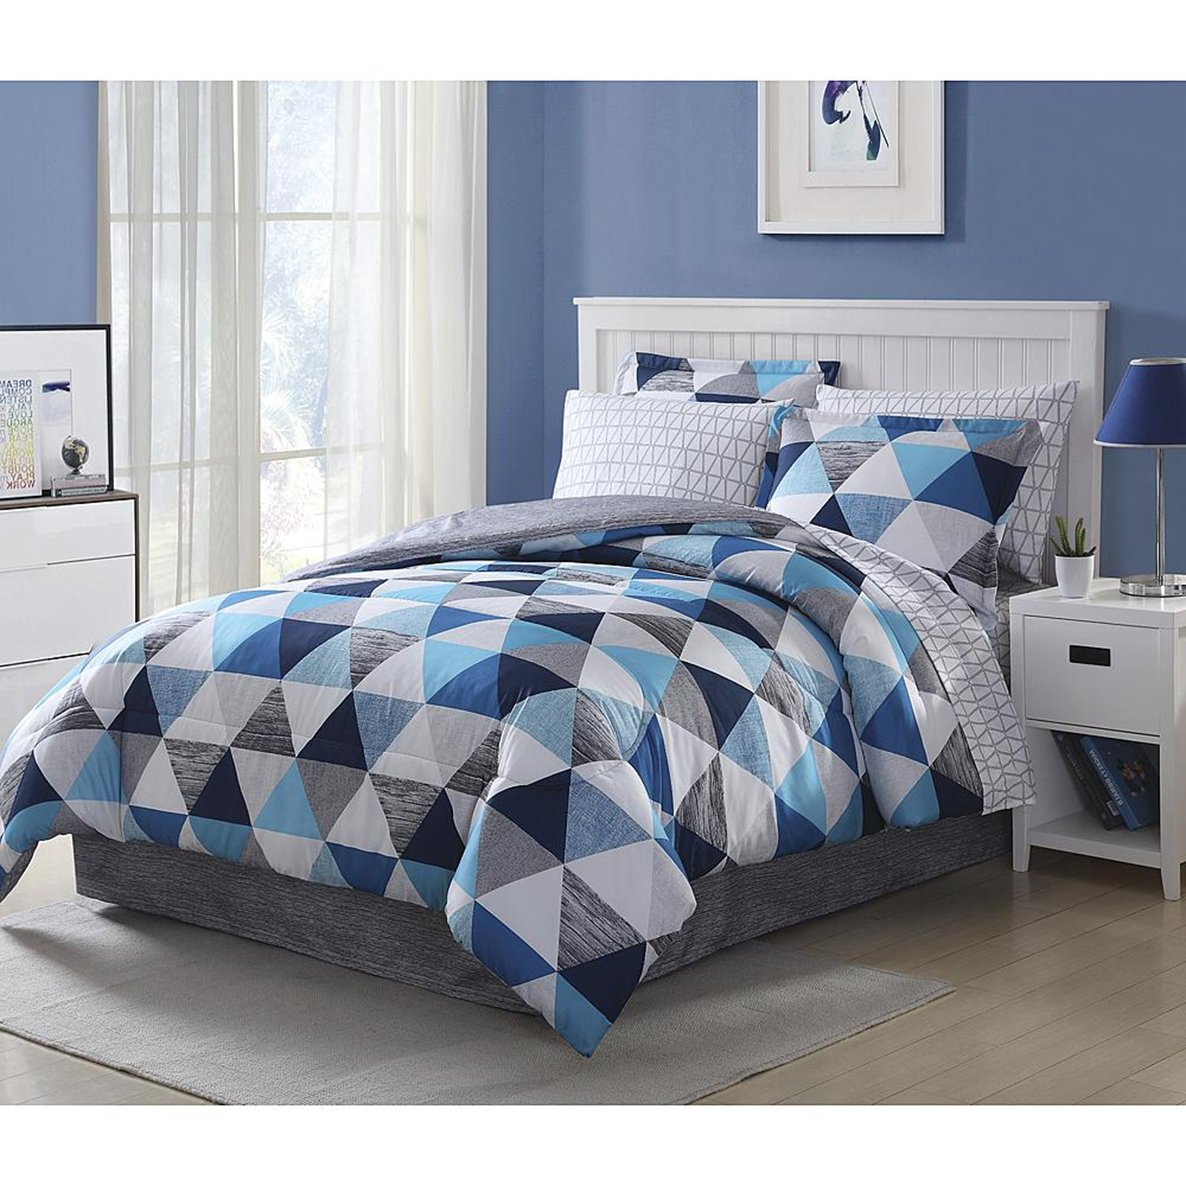 Amazon com blue white gray queen comforter set complete bedding comforter set with bonus free e book home kitchen